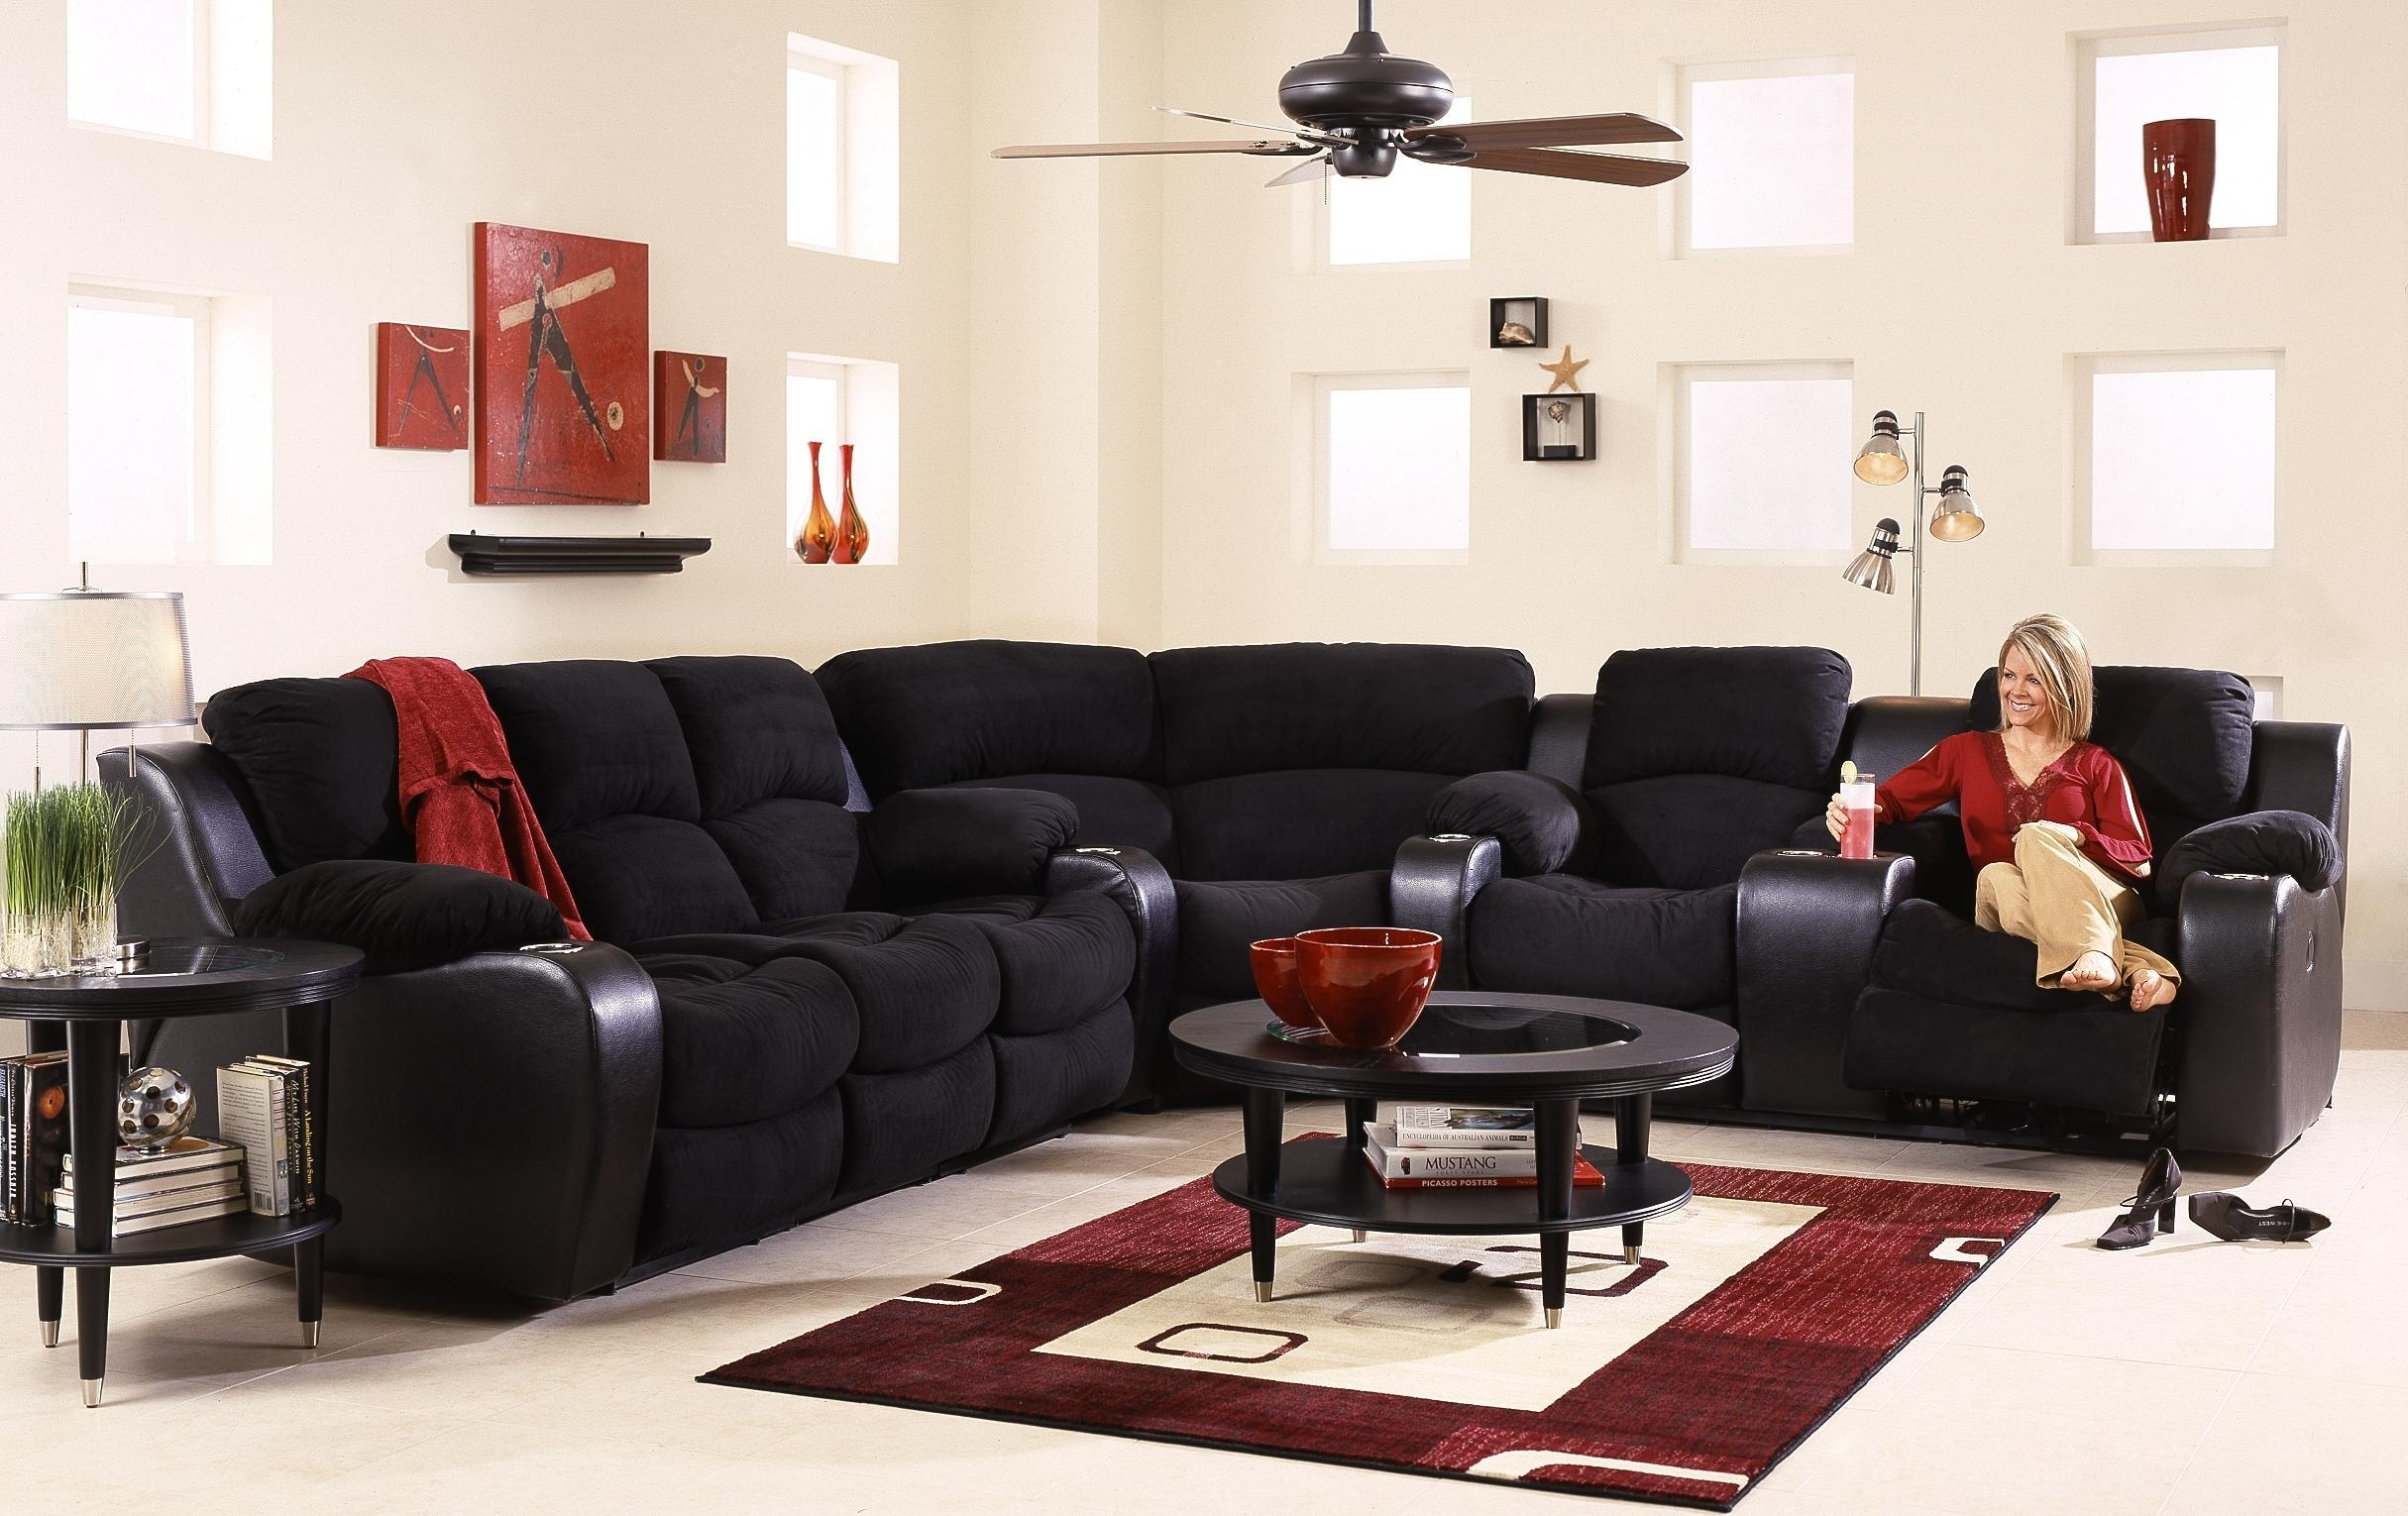 Awesome Sectional Sofas With Cup Holders Unique – Tatsuyoru Inside Grand Furniture Sectional Sofas (View 6 of 10)